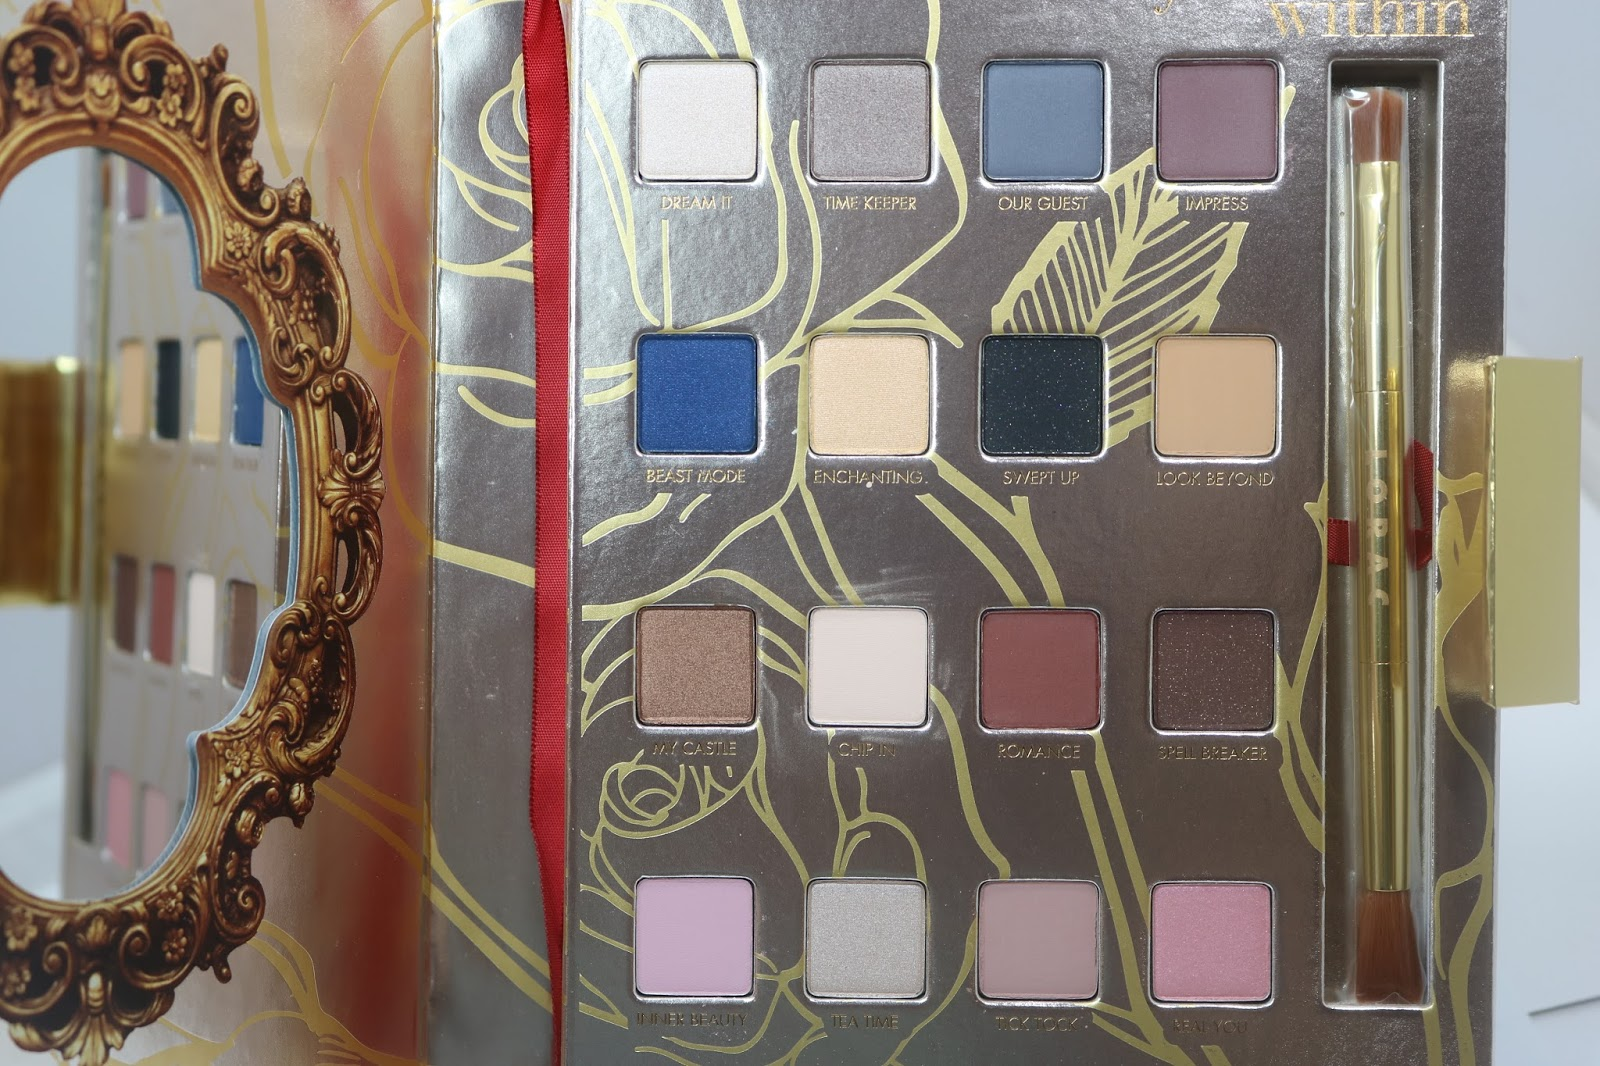 LORAC Beauty and the Beast palette